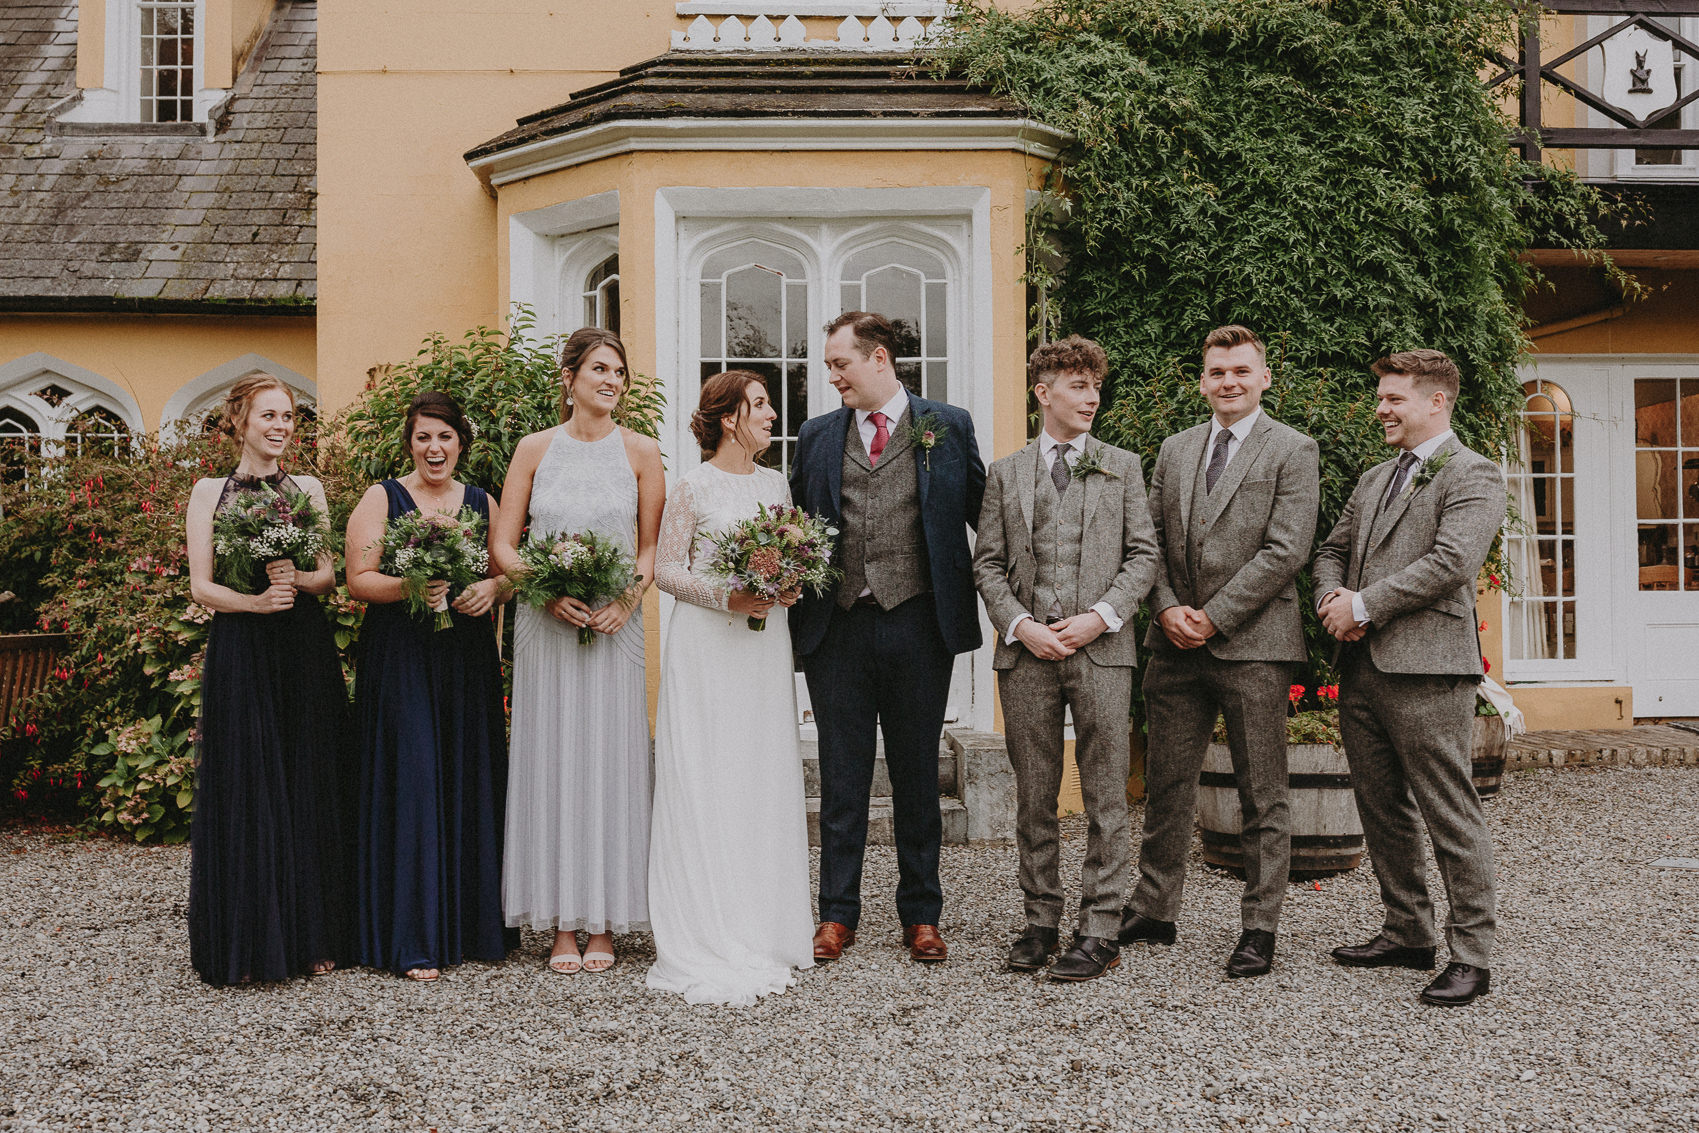 Jessica & Vincent wedding at Martinstown House 122